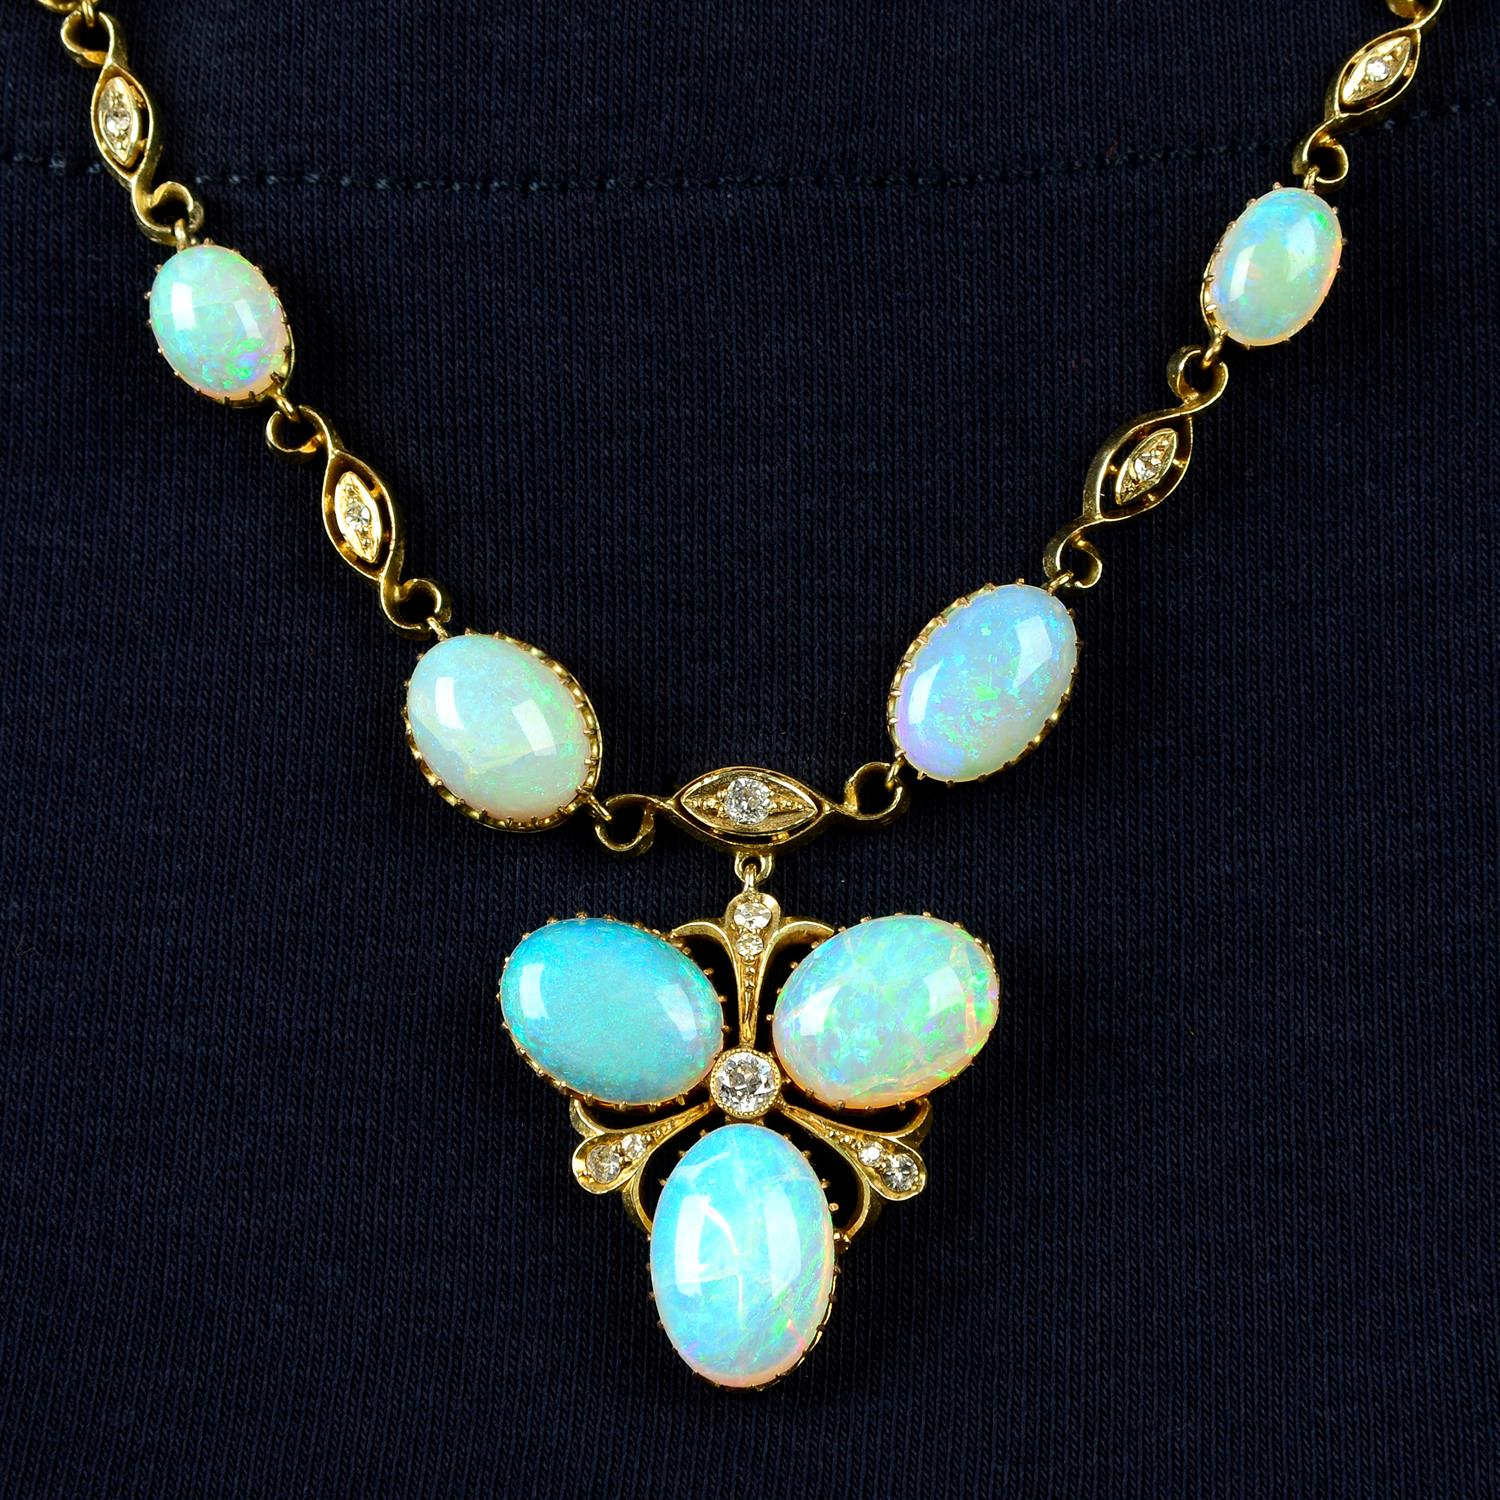 An early 20th century gold opal and diamond necklace, with later back chain.